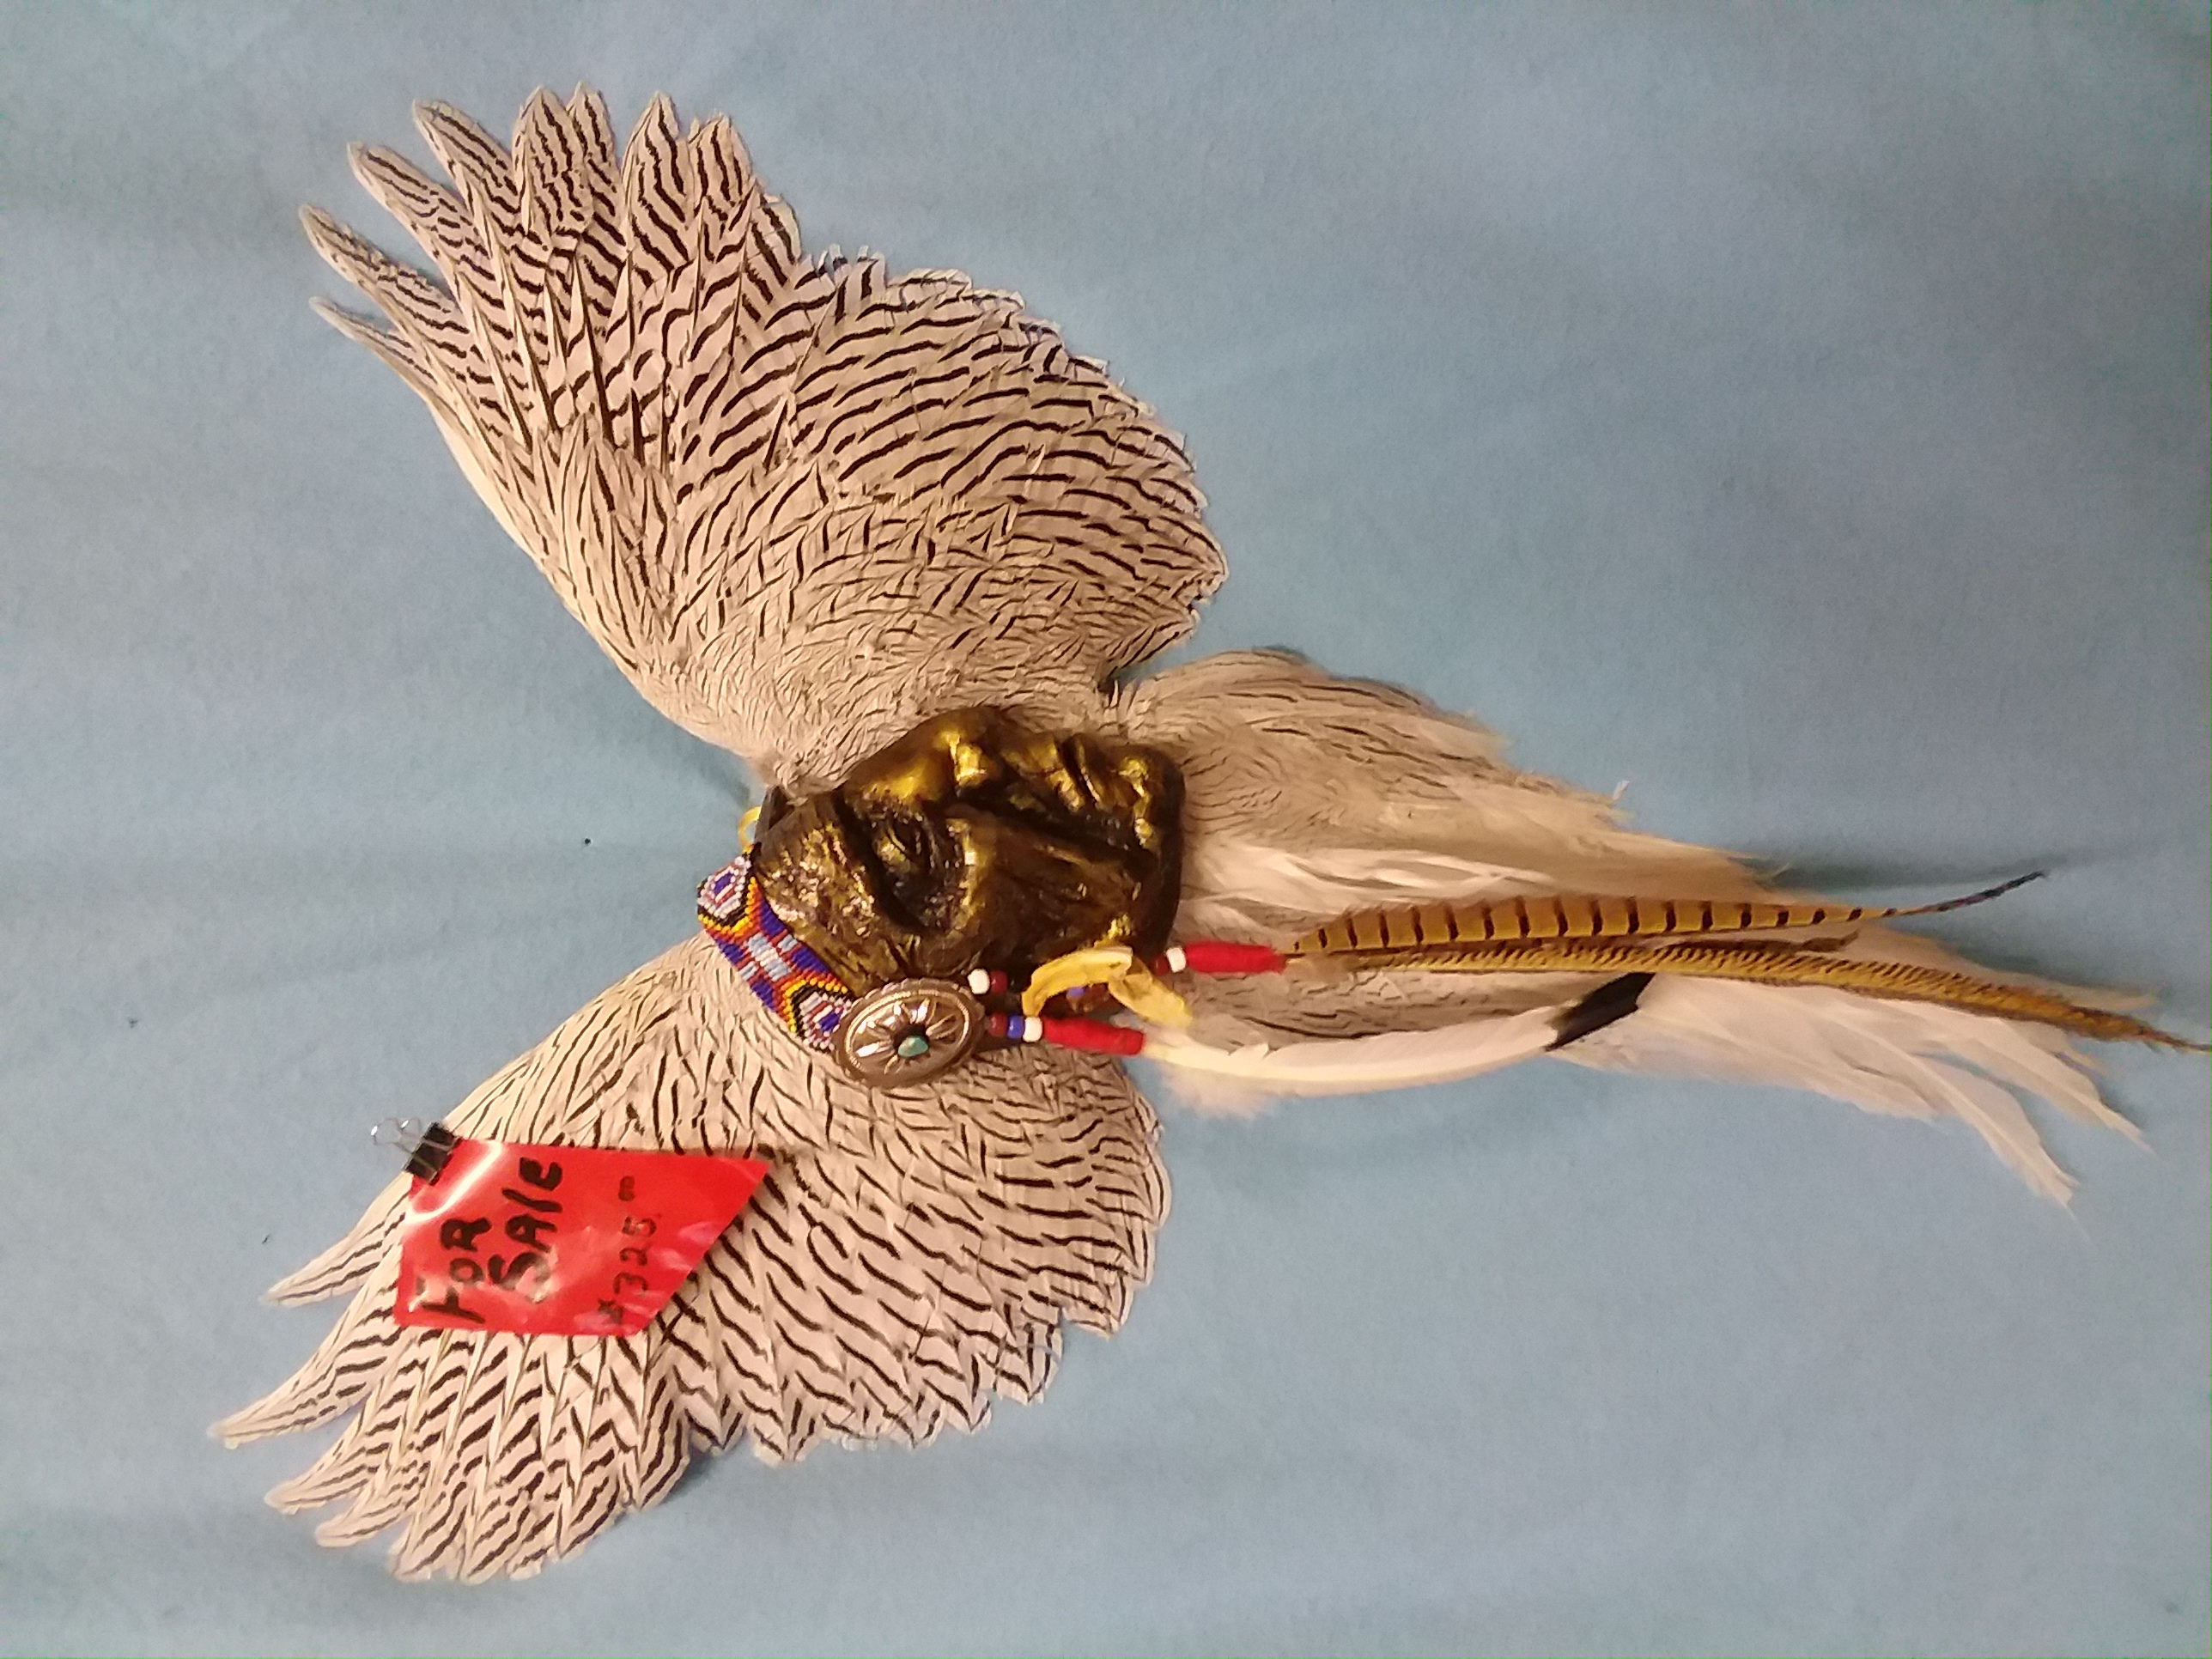 Silver pheasant with Chief Red Cloud